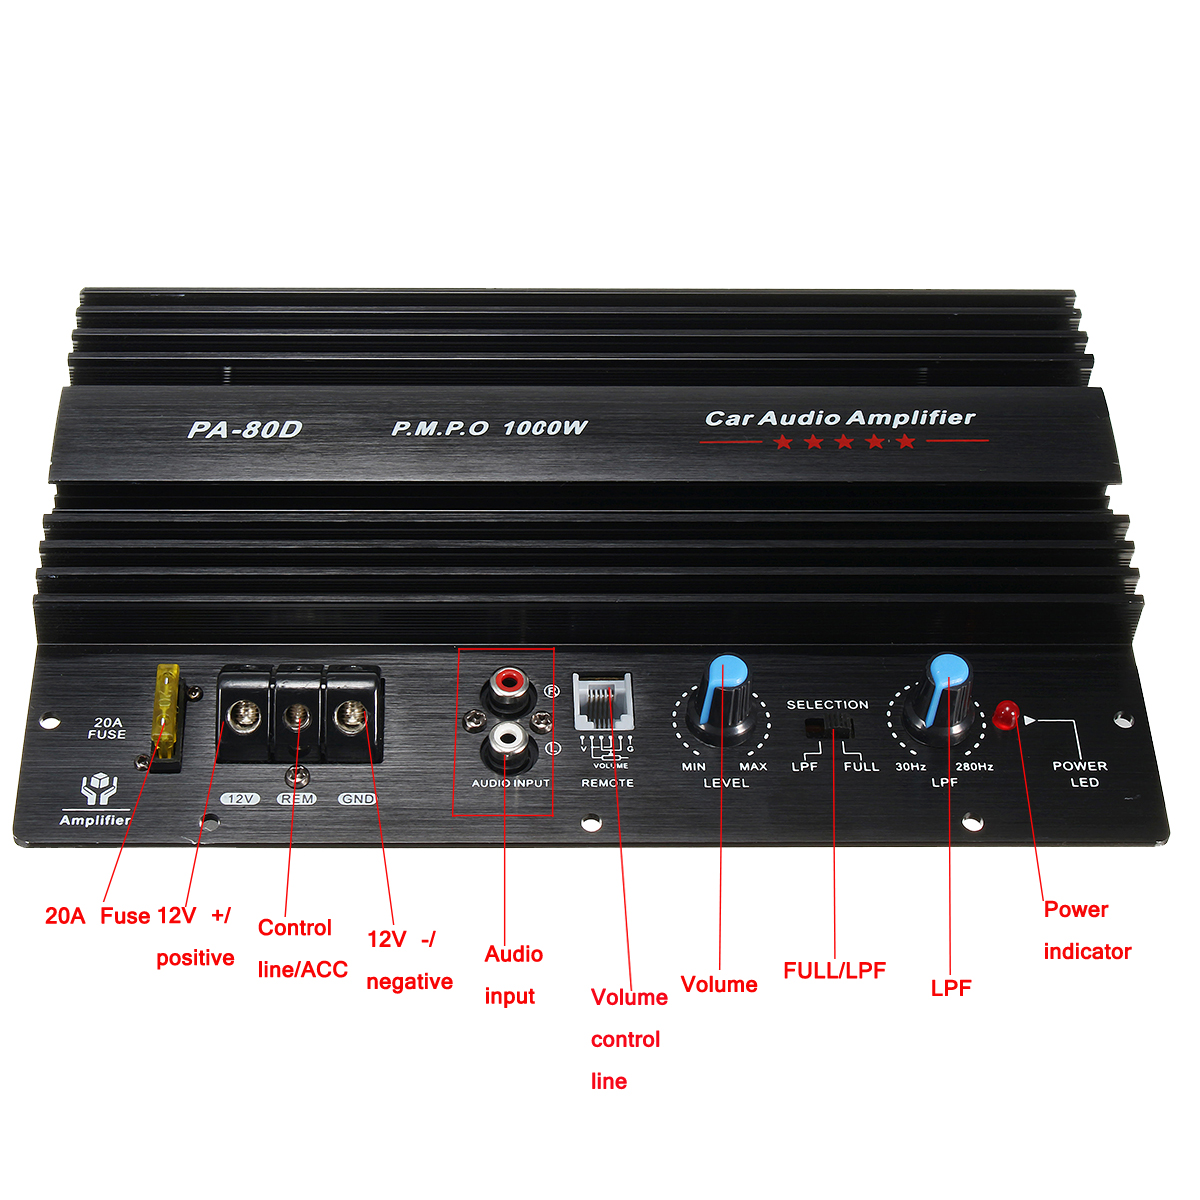 Car Audio Amplifier Wiring Diagram Collection Car Audio System